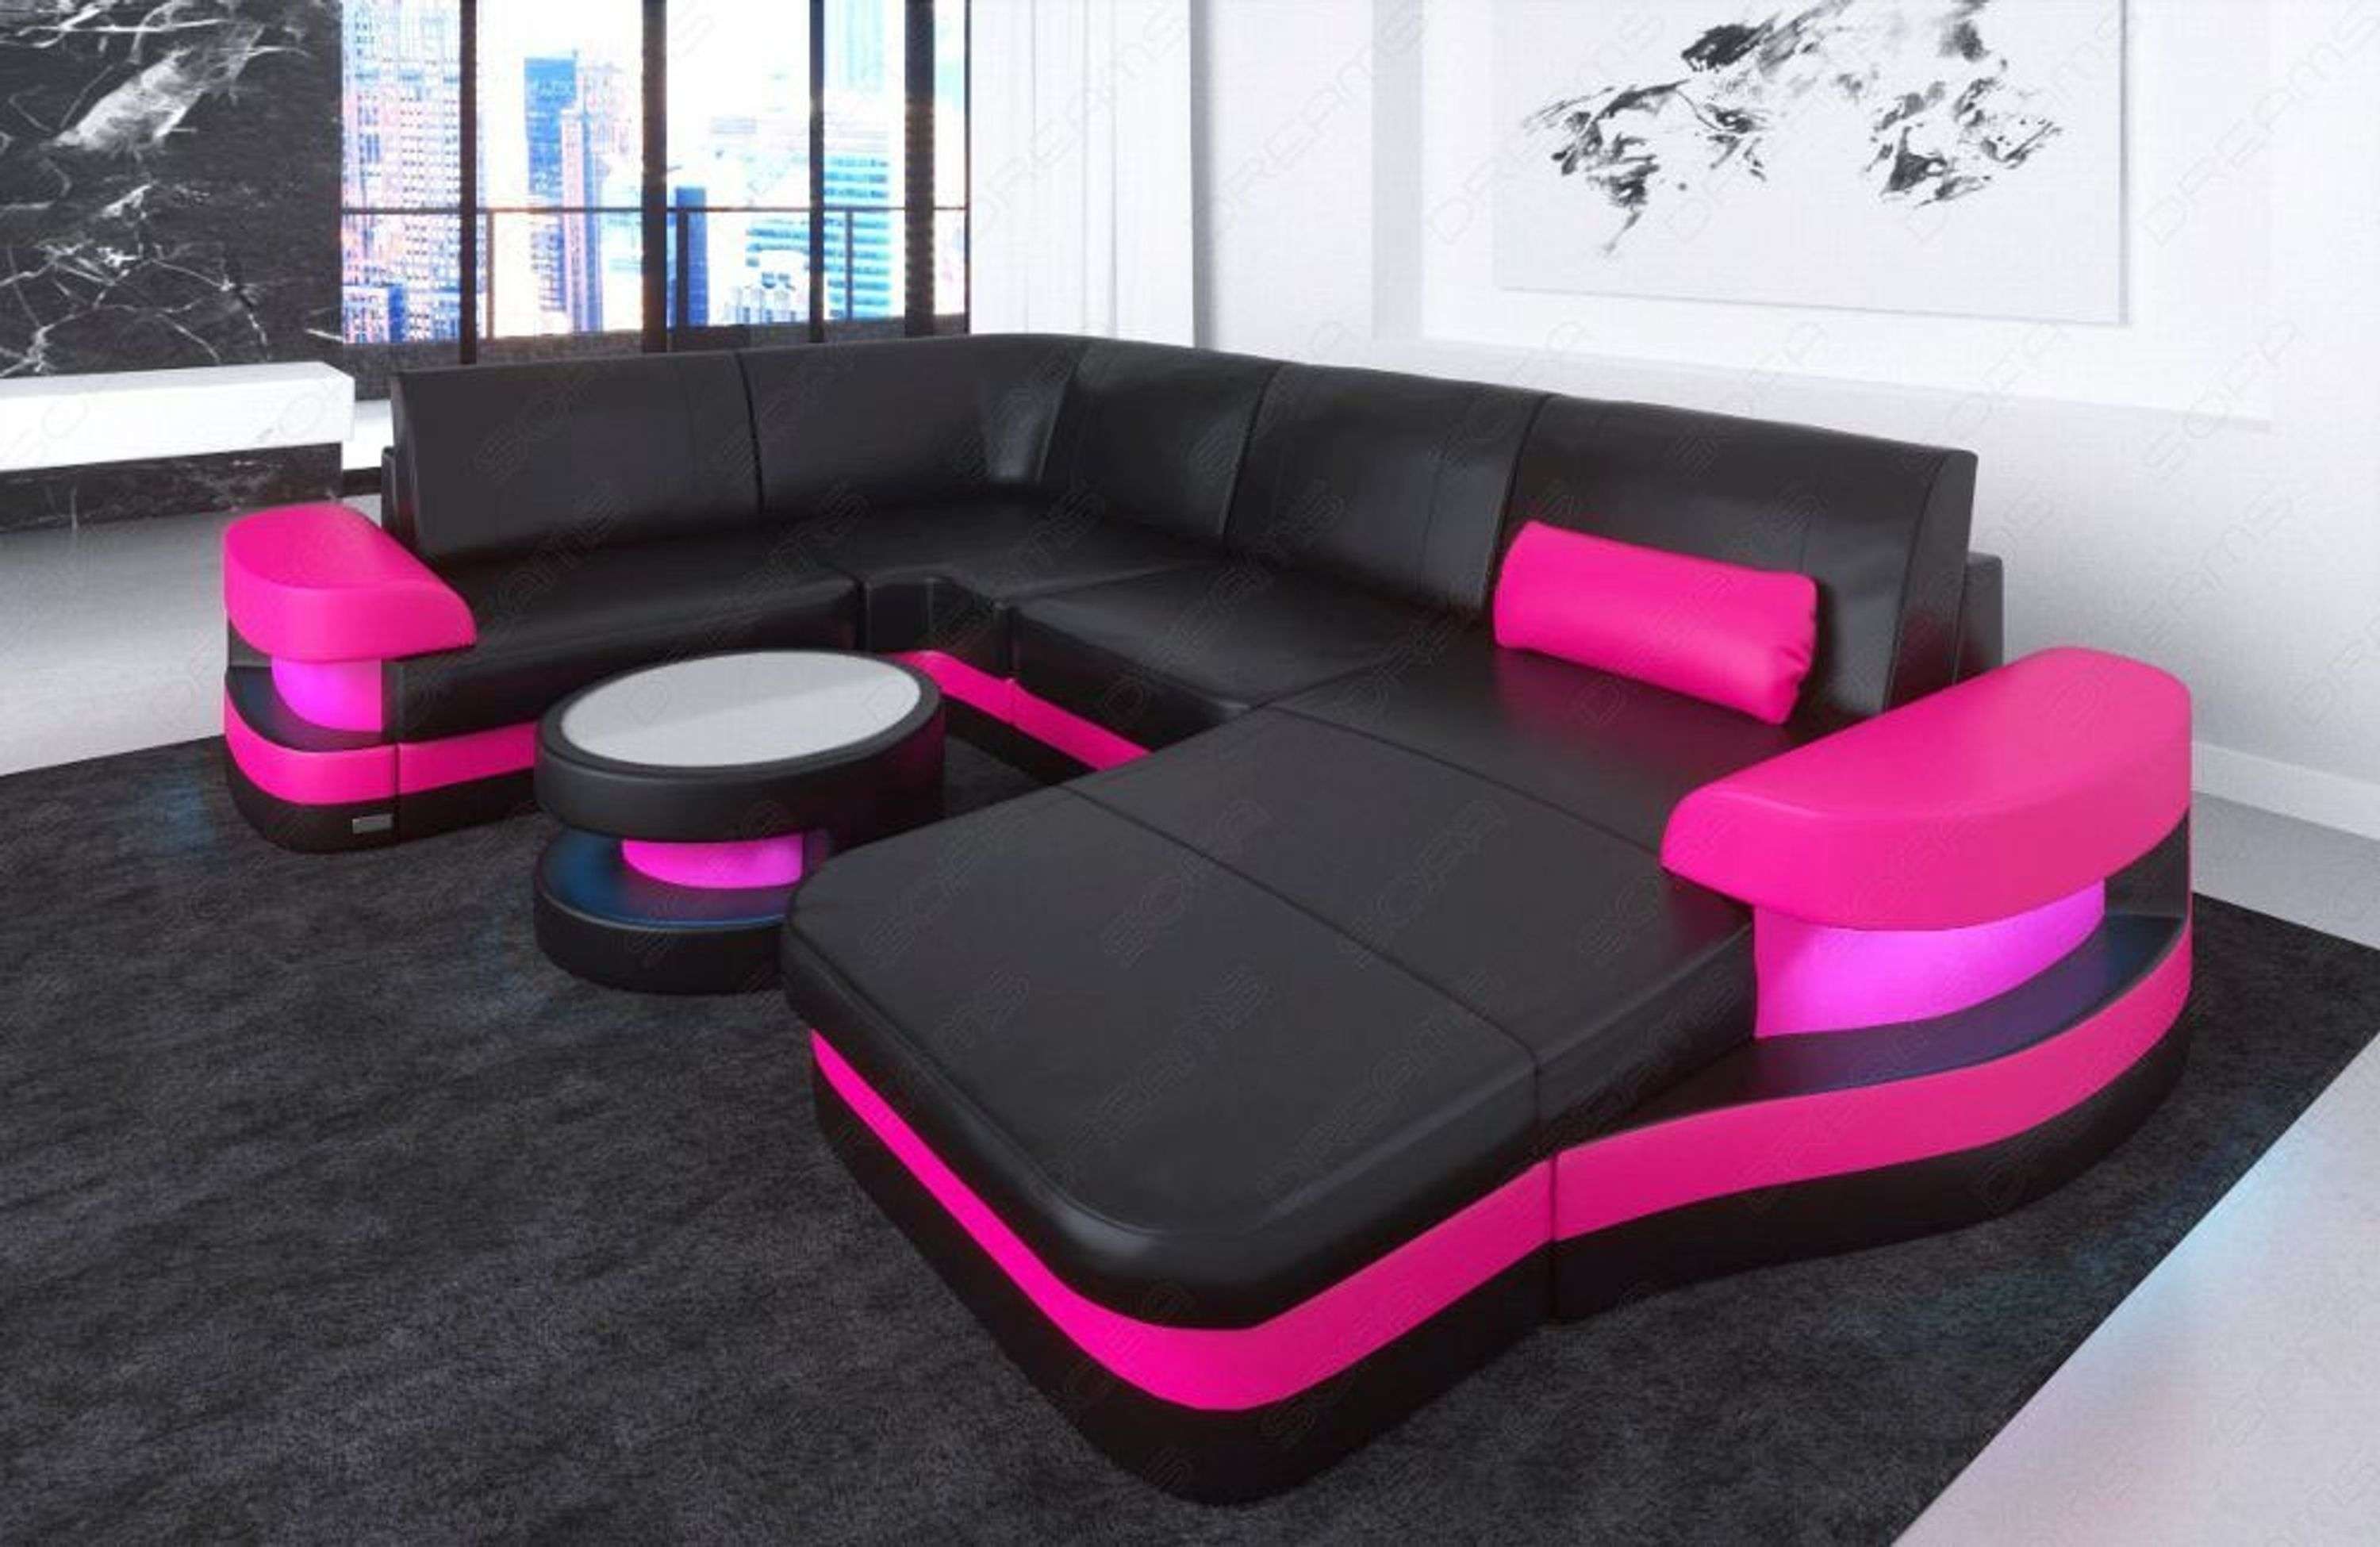 leder ecksofa ledersofa eckcouch sofa modena u form design couch led beleuchtung kaufen bei. Black Bedroom Furniture Sets. Home Design Ideas